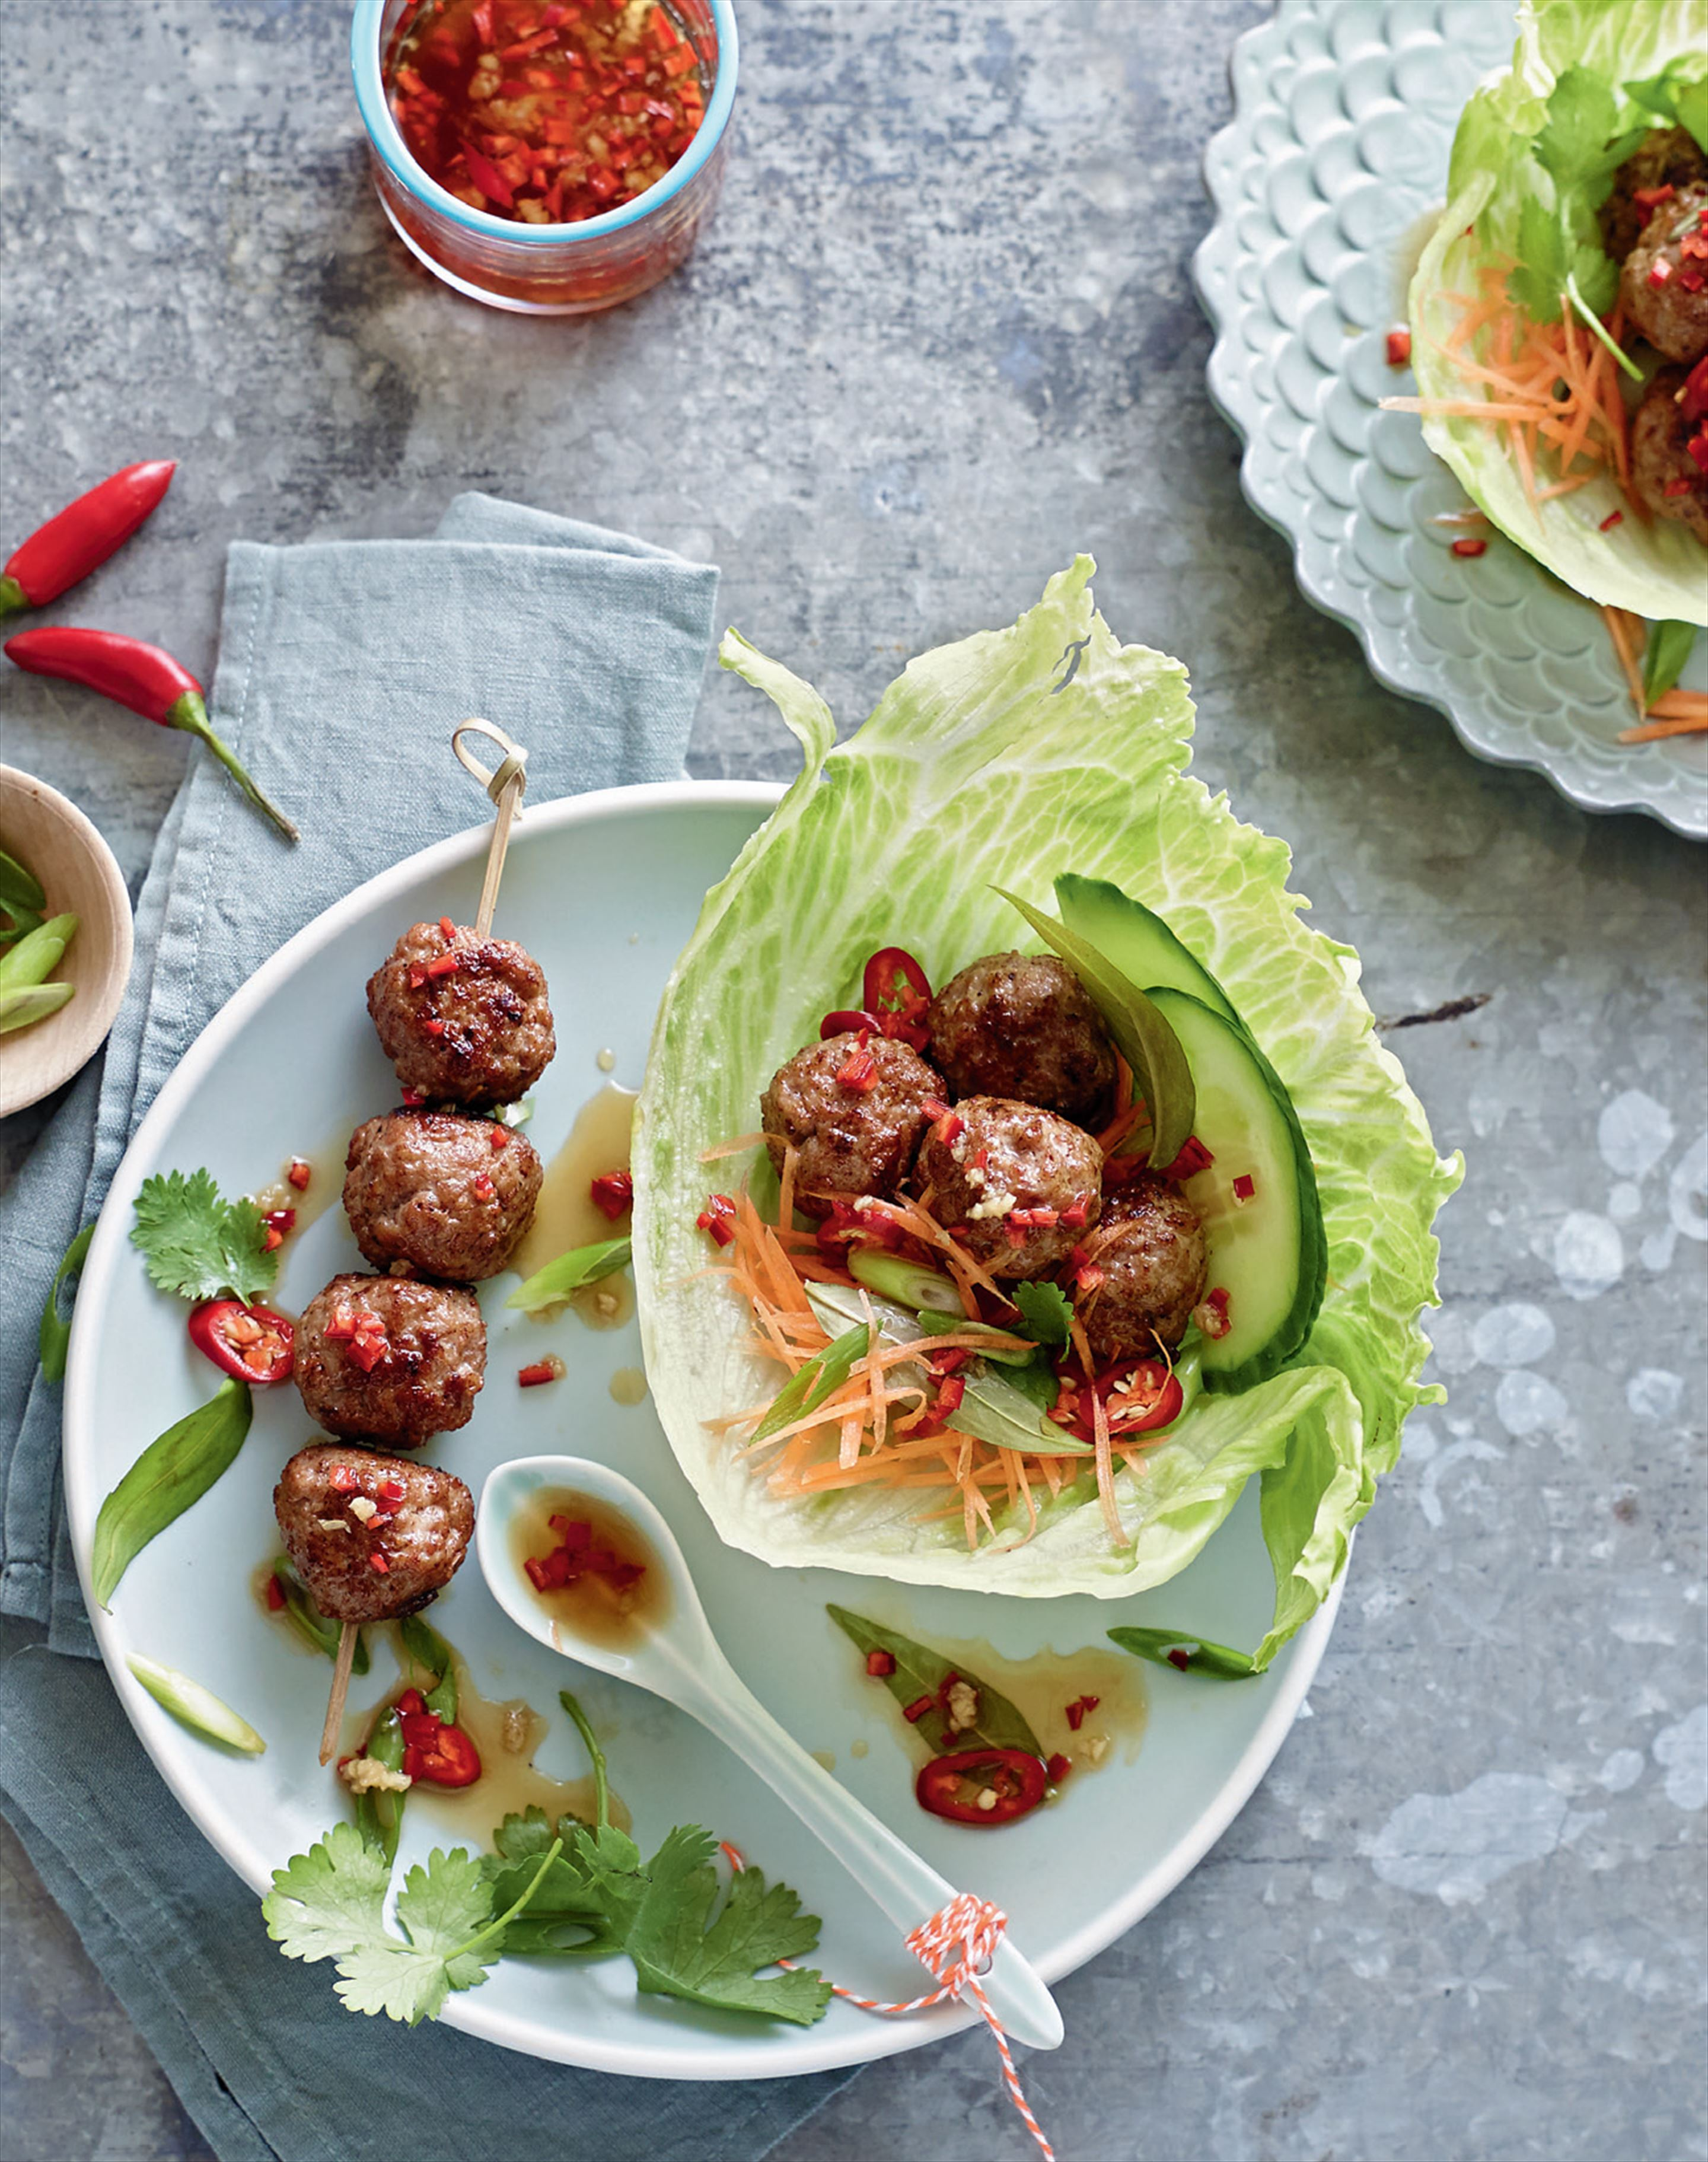 Vietnamese grilled pork meatballs